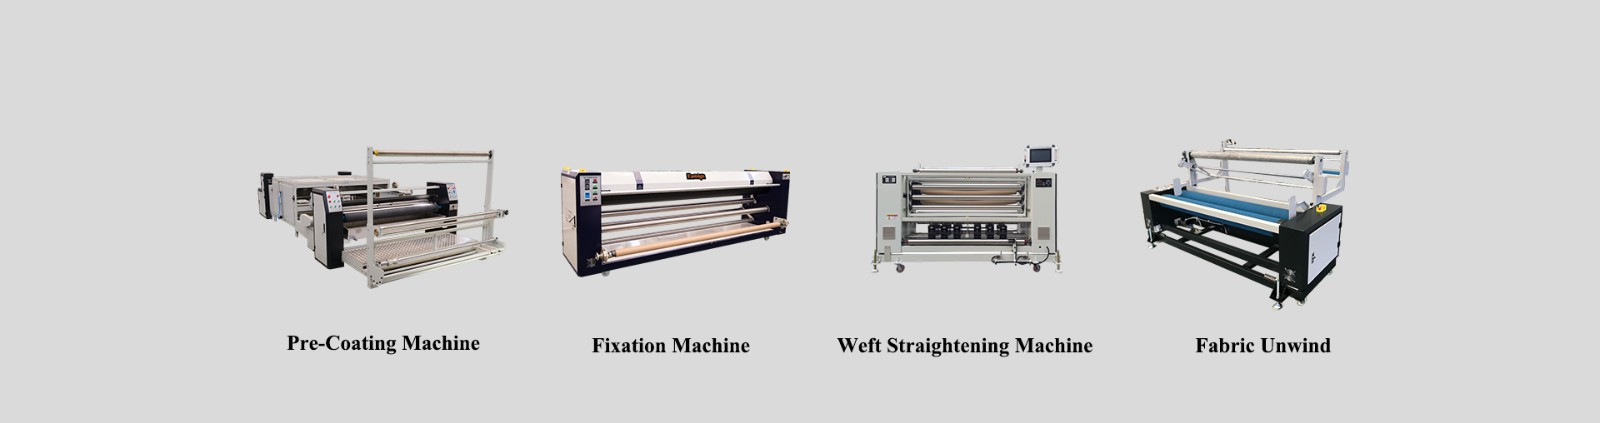 Pre-Coating Machine